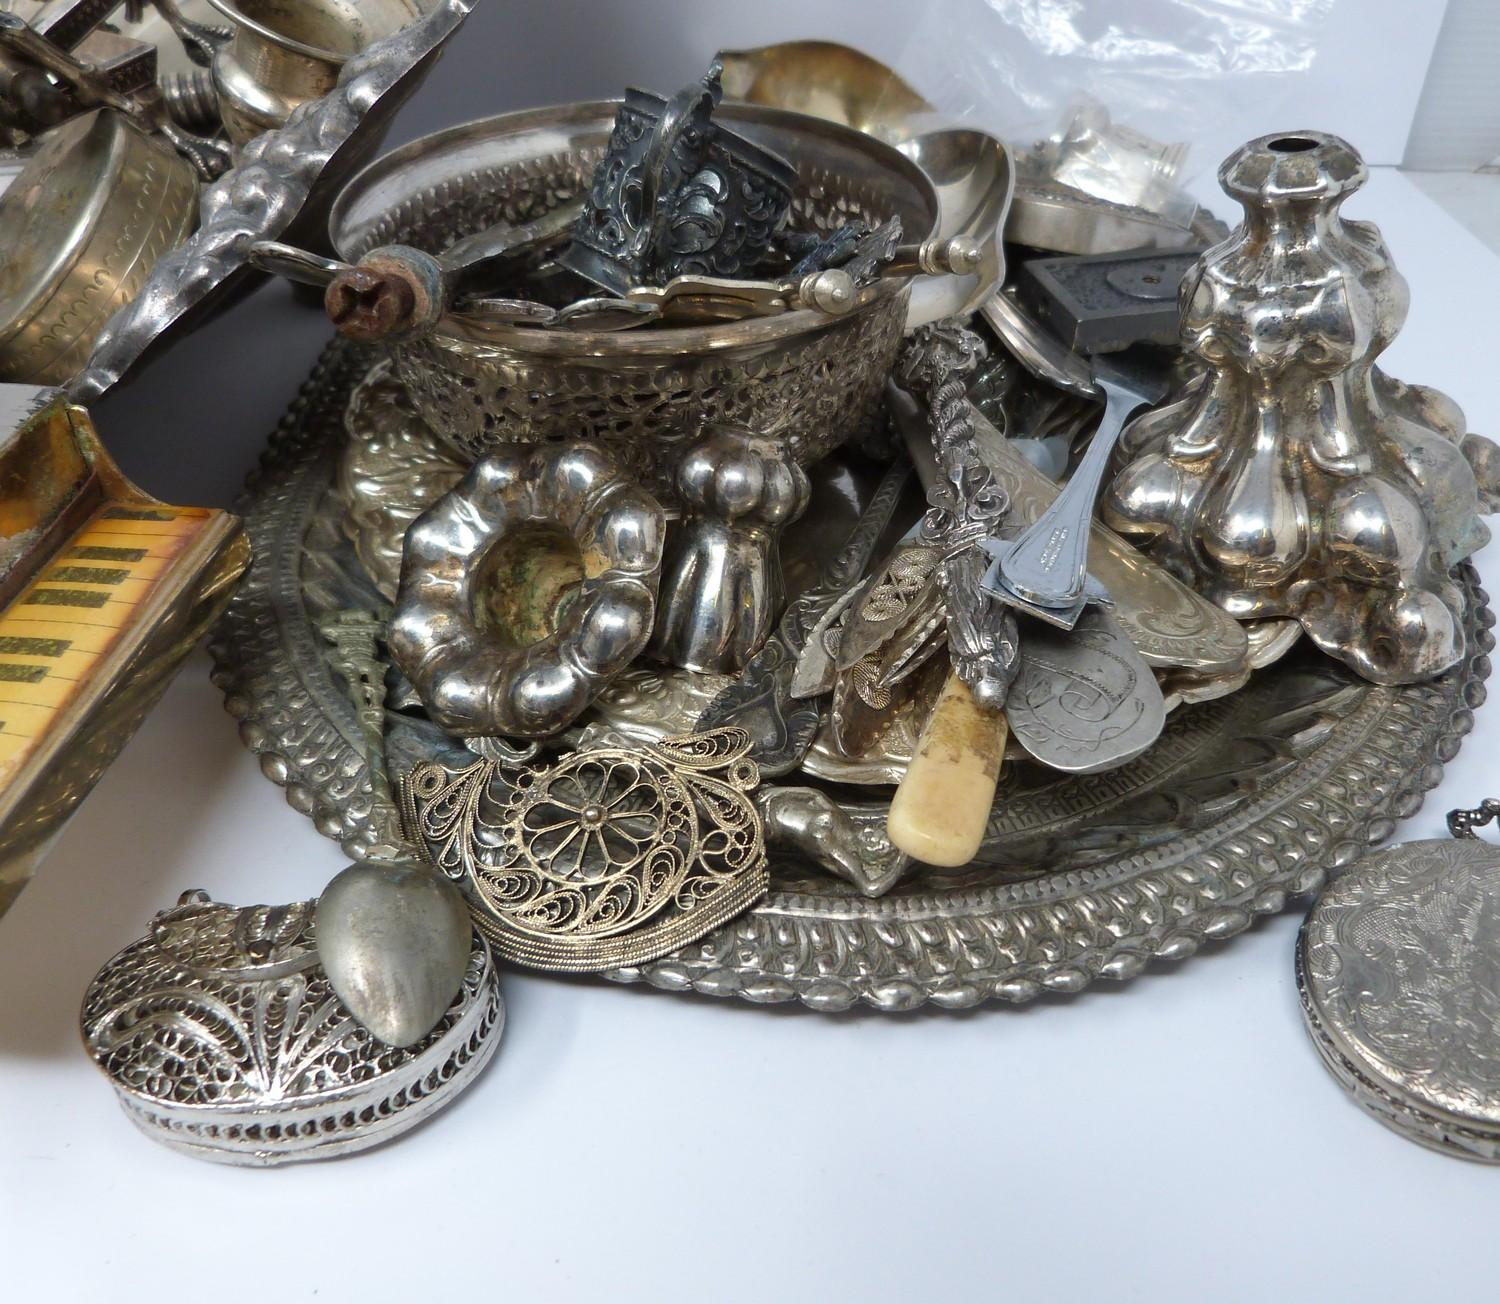 A collection of silver plate and other metalware including, trays, apostle spoons, bowls and cutlery - Image 5 of 5